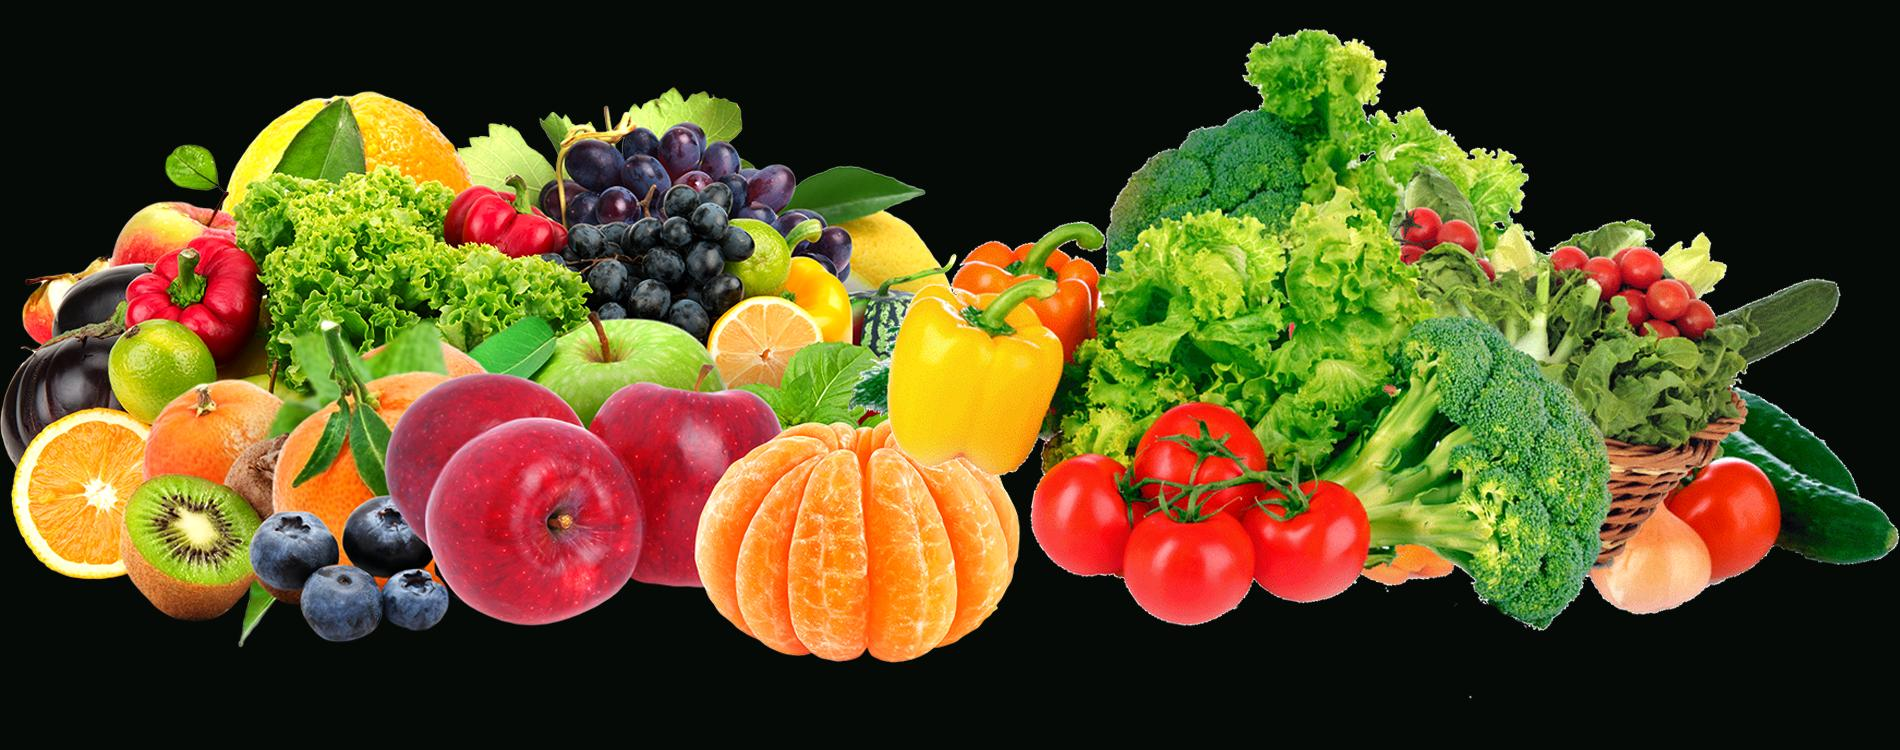 Top 12 Fruits & Vegetables Rich in Vitamin C to Boost Your Immunity